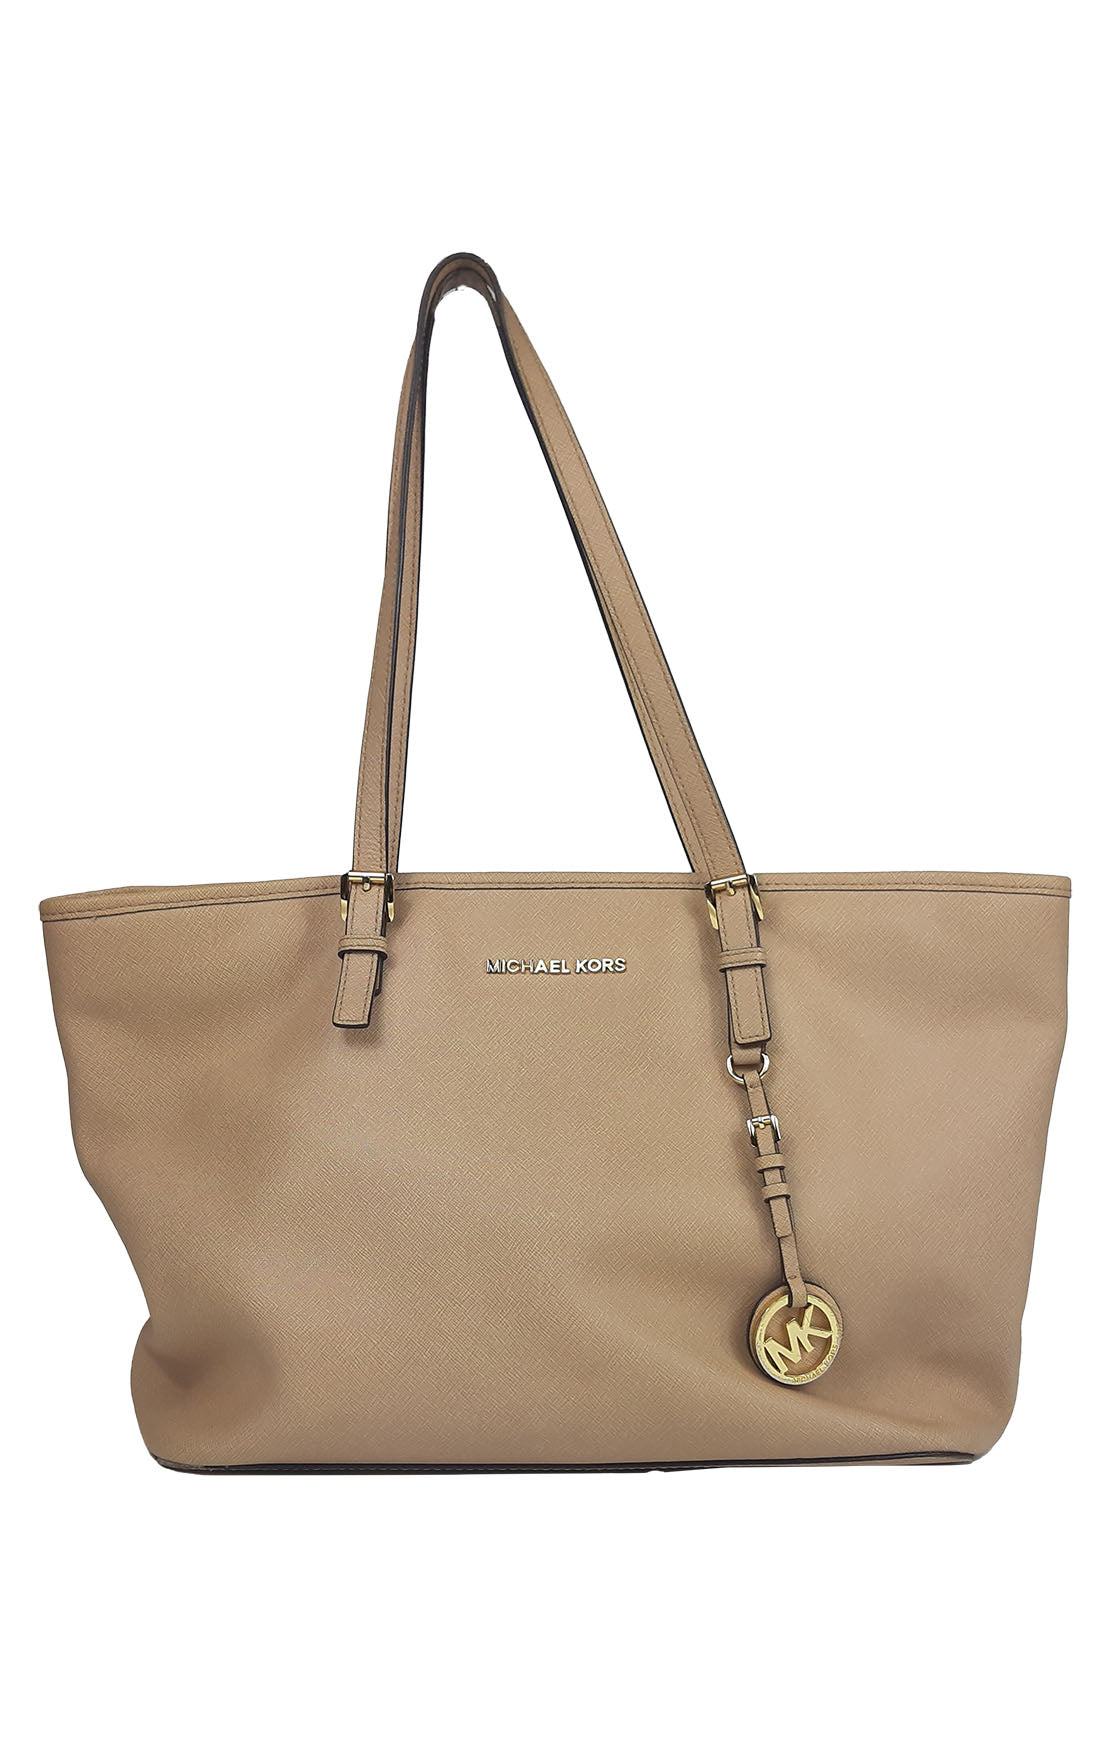 Michael Kors Tote Medium Bag in Beige